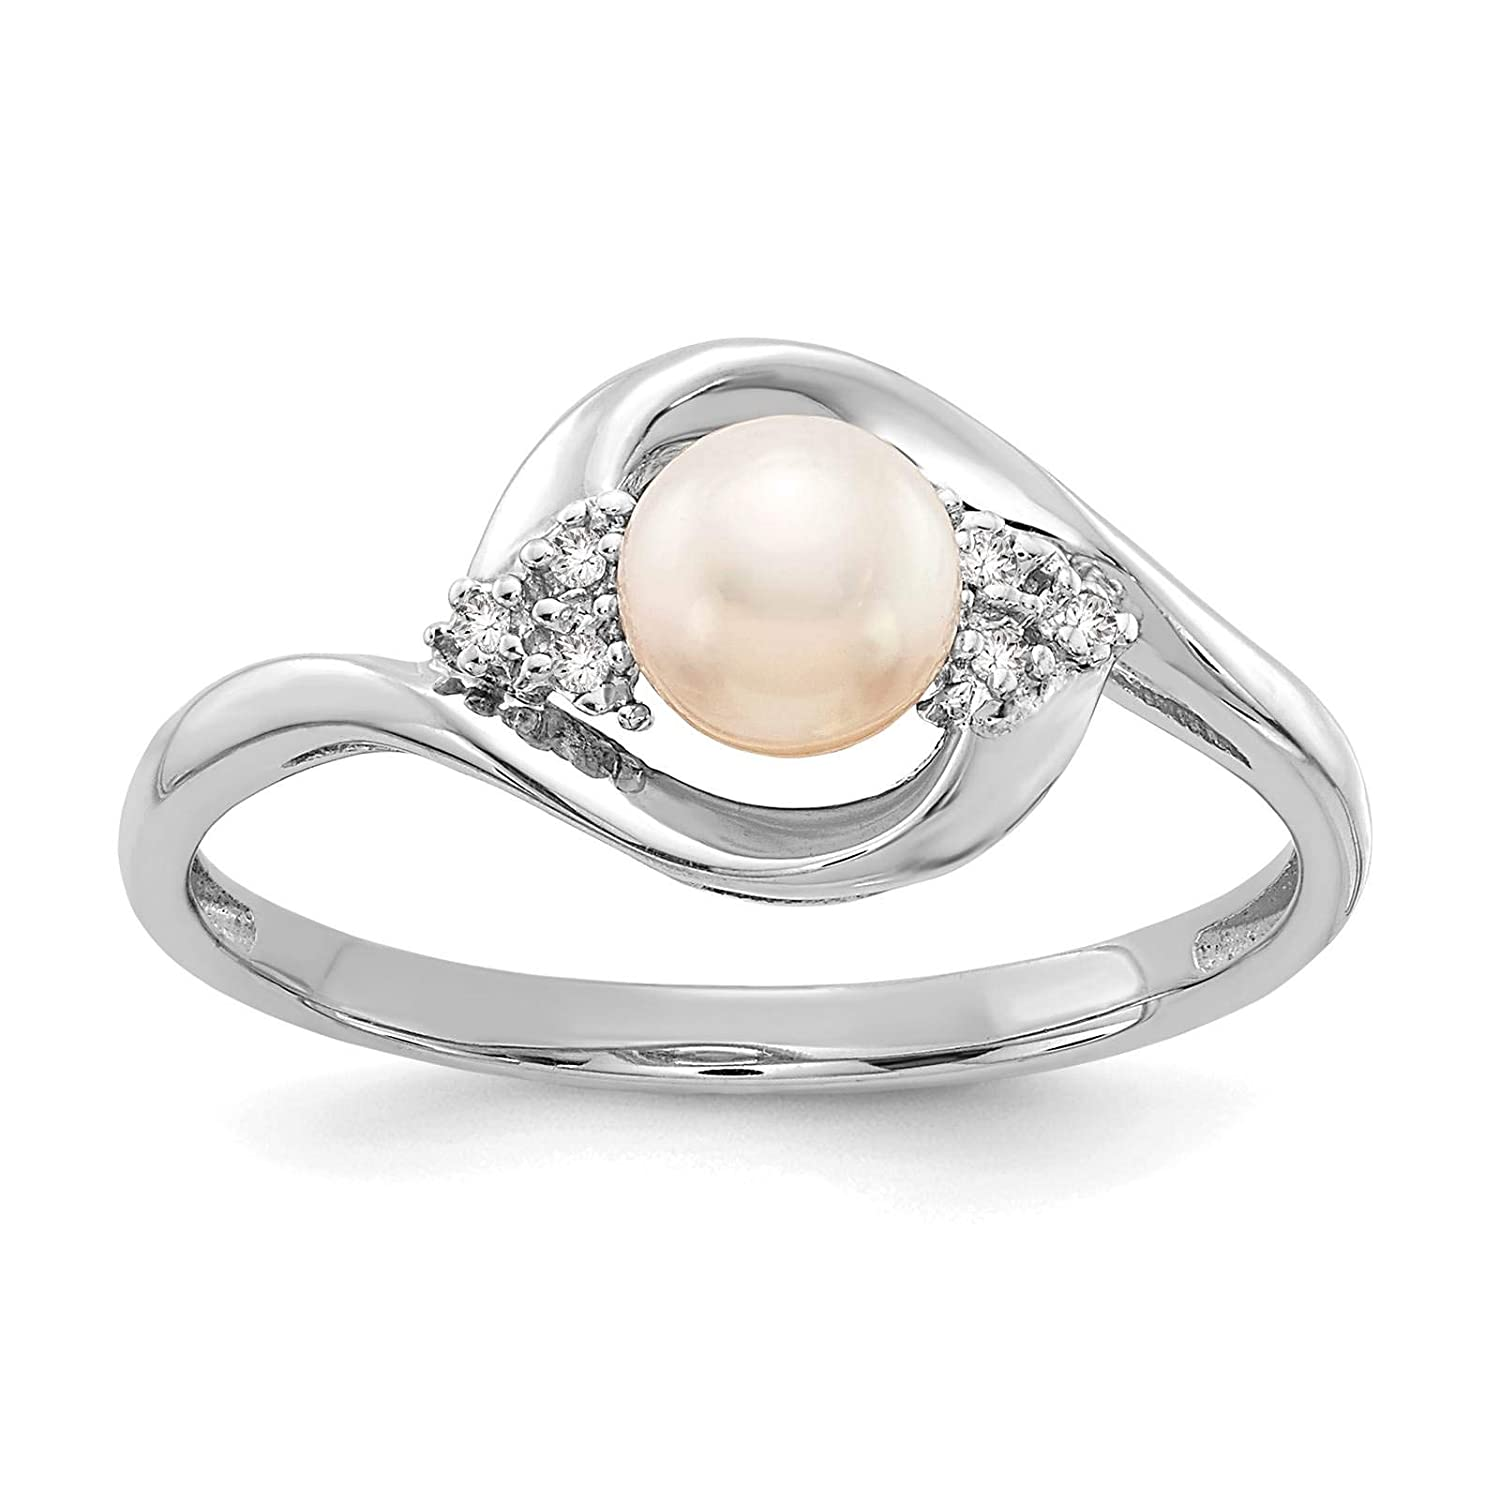 14K White Gold Diamond /& Freshwater Cultured Pearl June Stone Ring Size 7